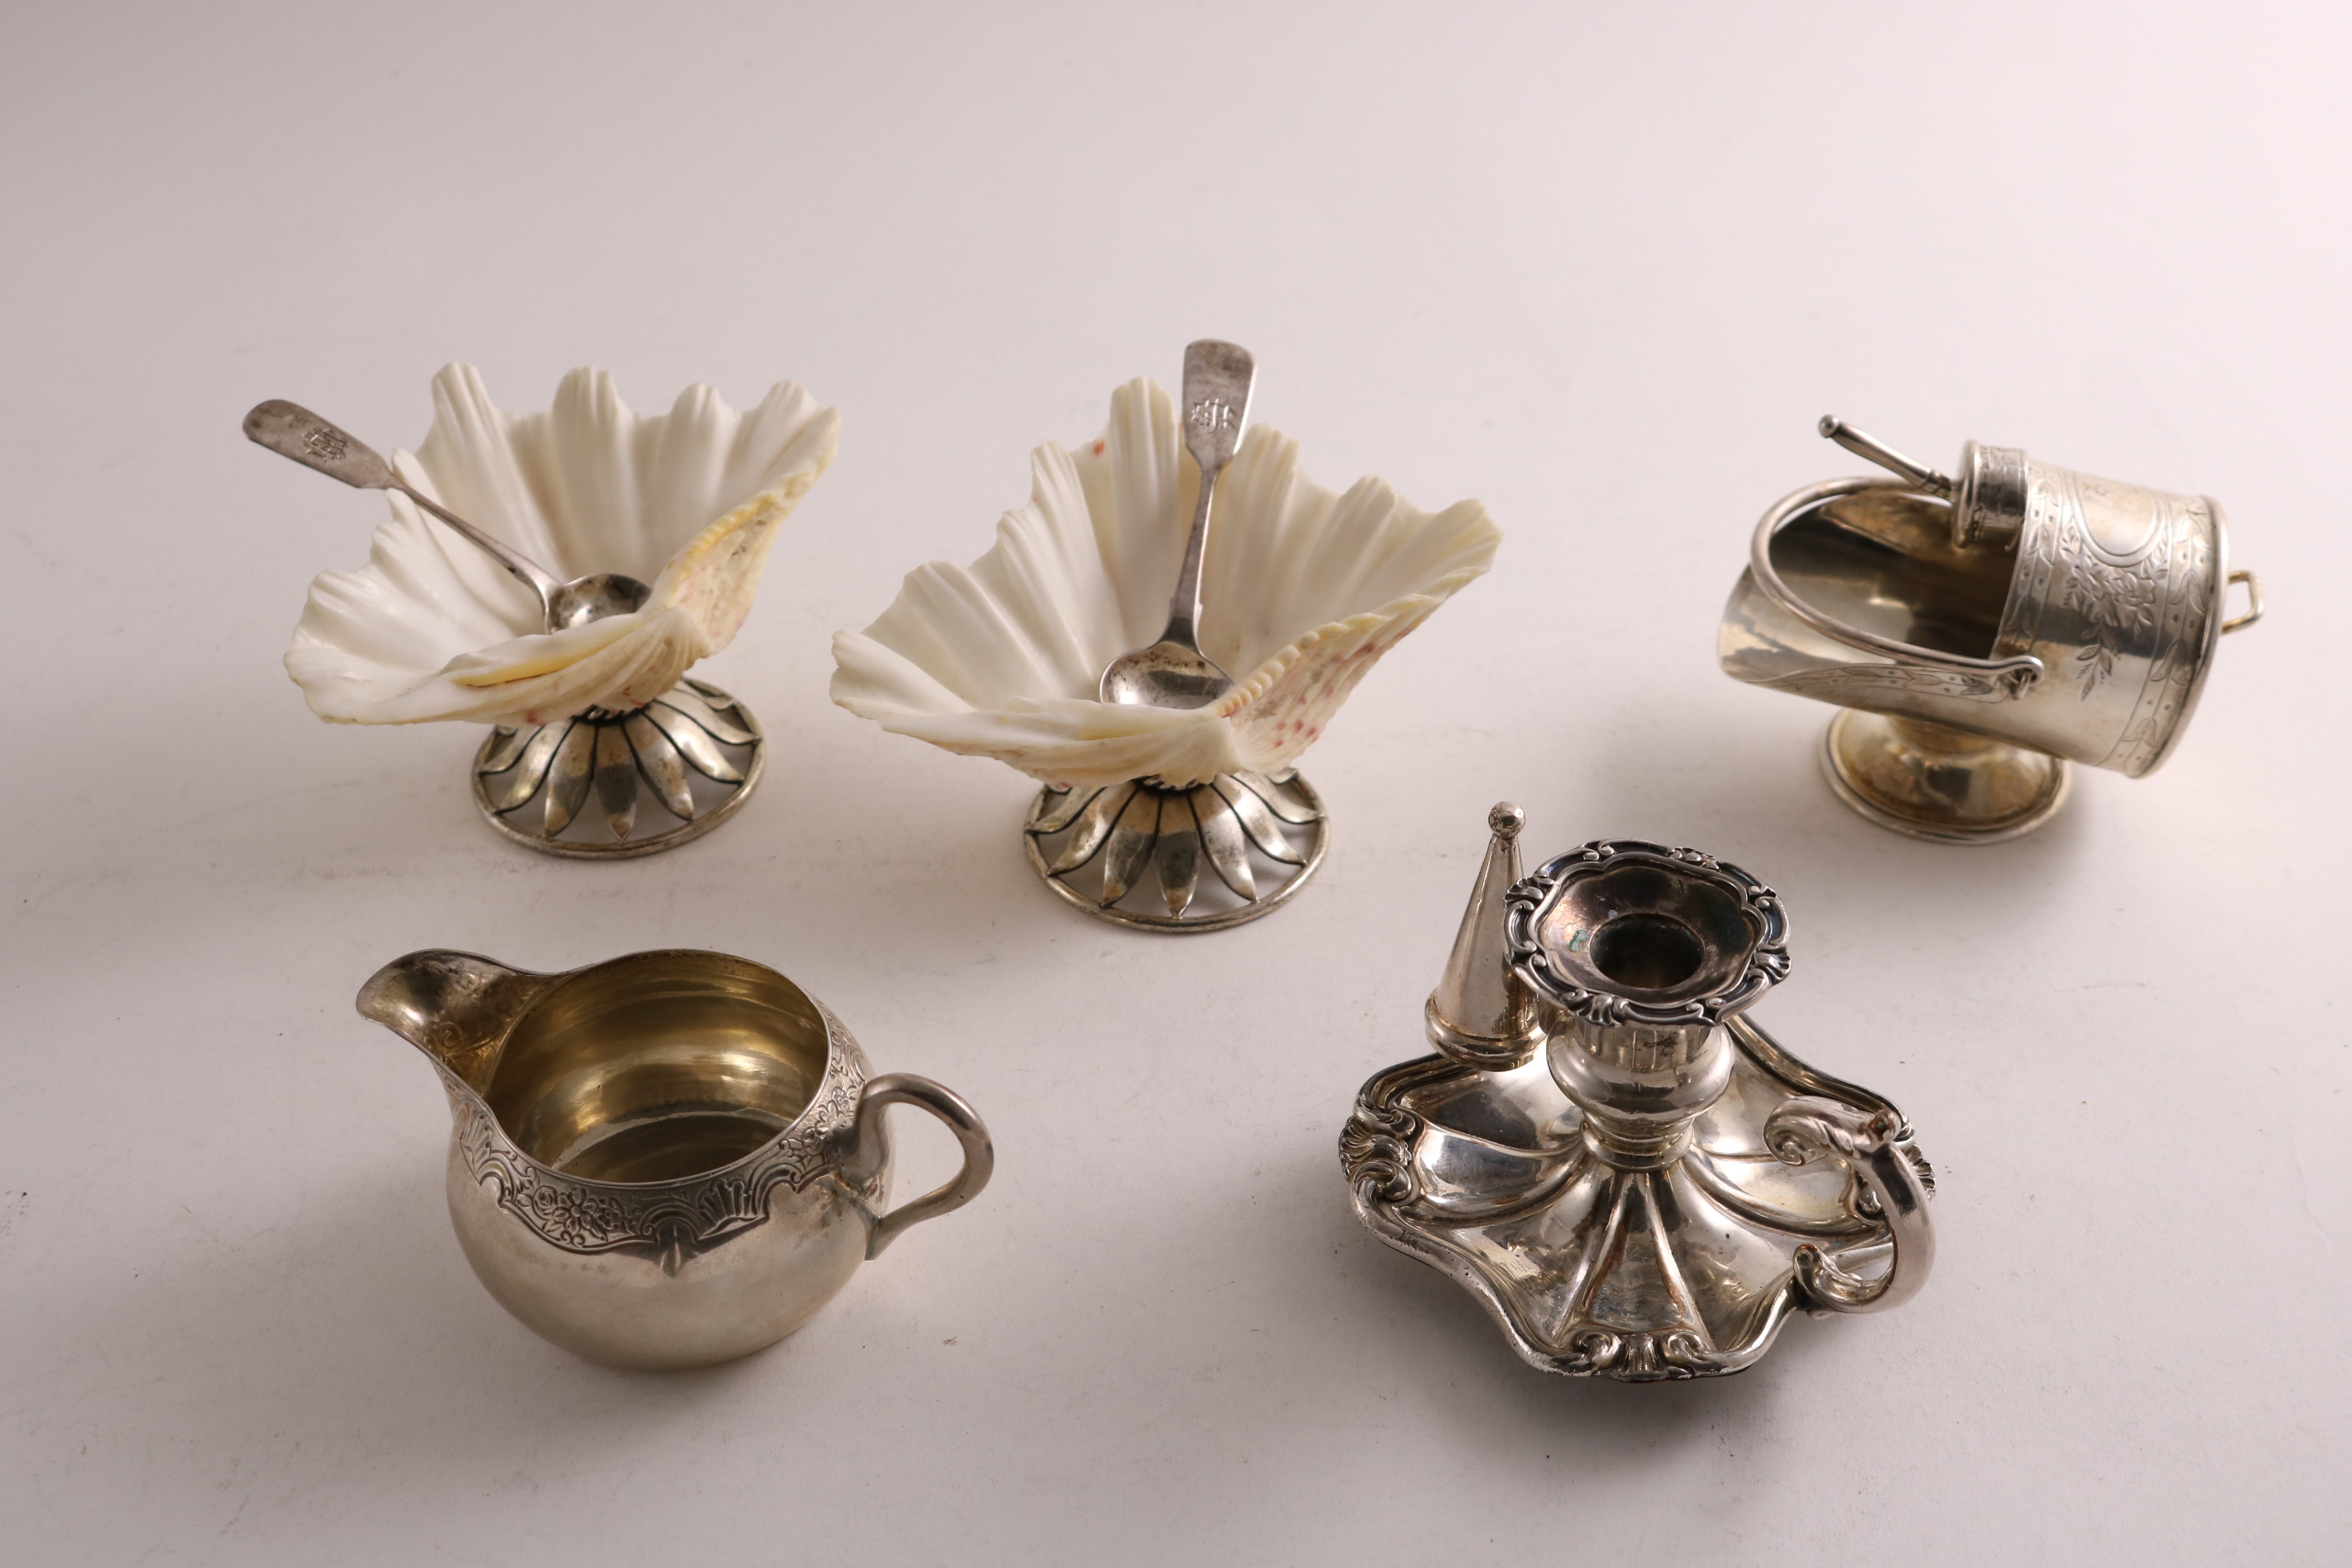 Lot 50 - A PAIR OF VICTORIAN SILVER-MOUNTED NATURAL SHELL SALTS probably by Walter Read, London 1868, a